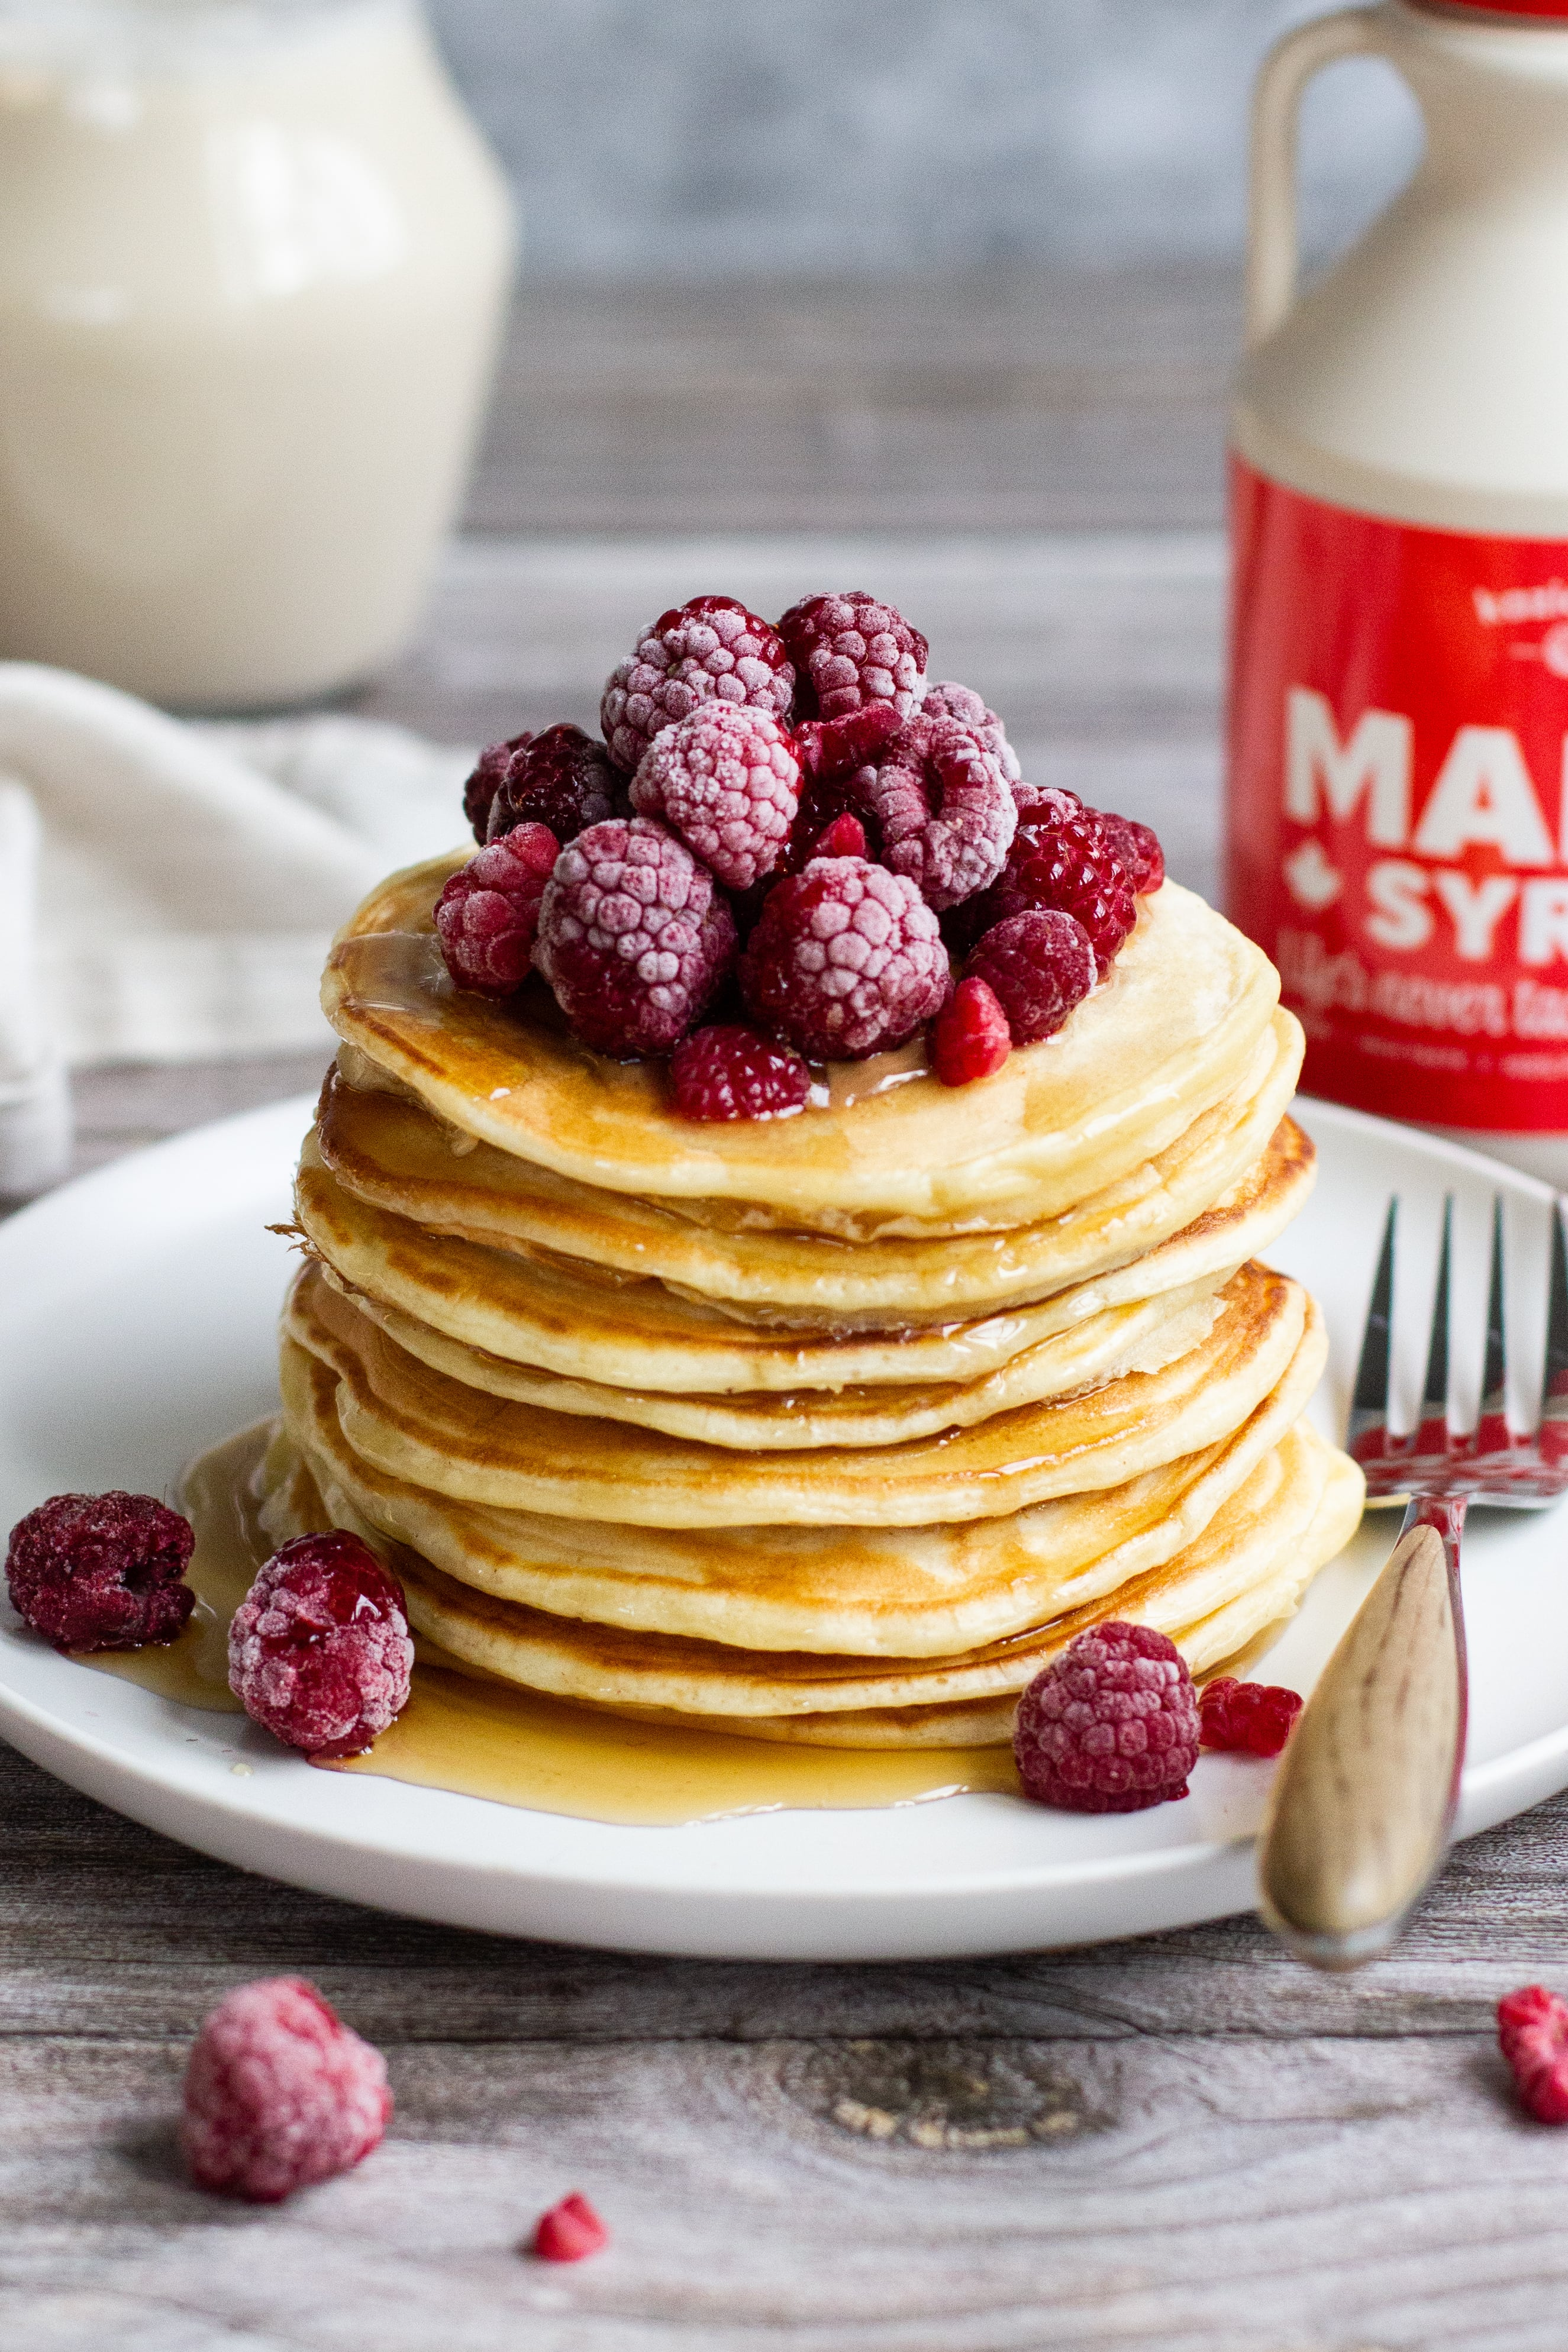 Gluten-free pancakes, topping: maple syrup and fruit